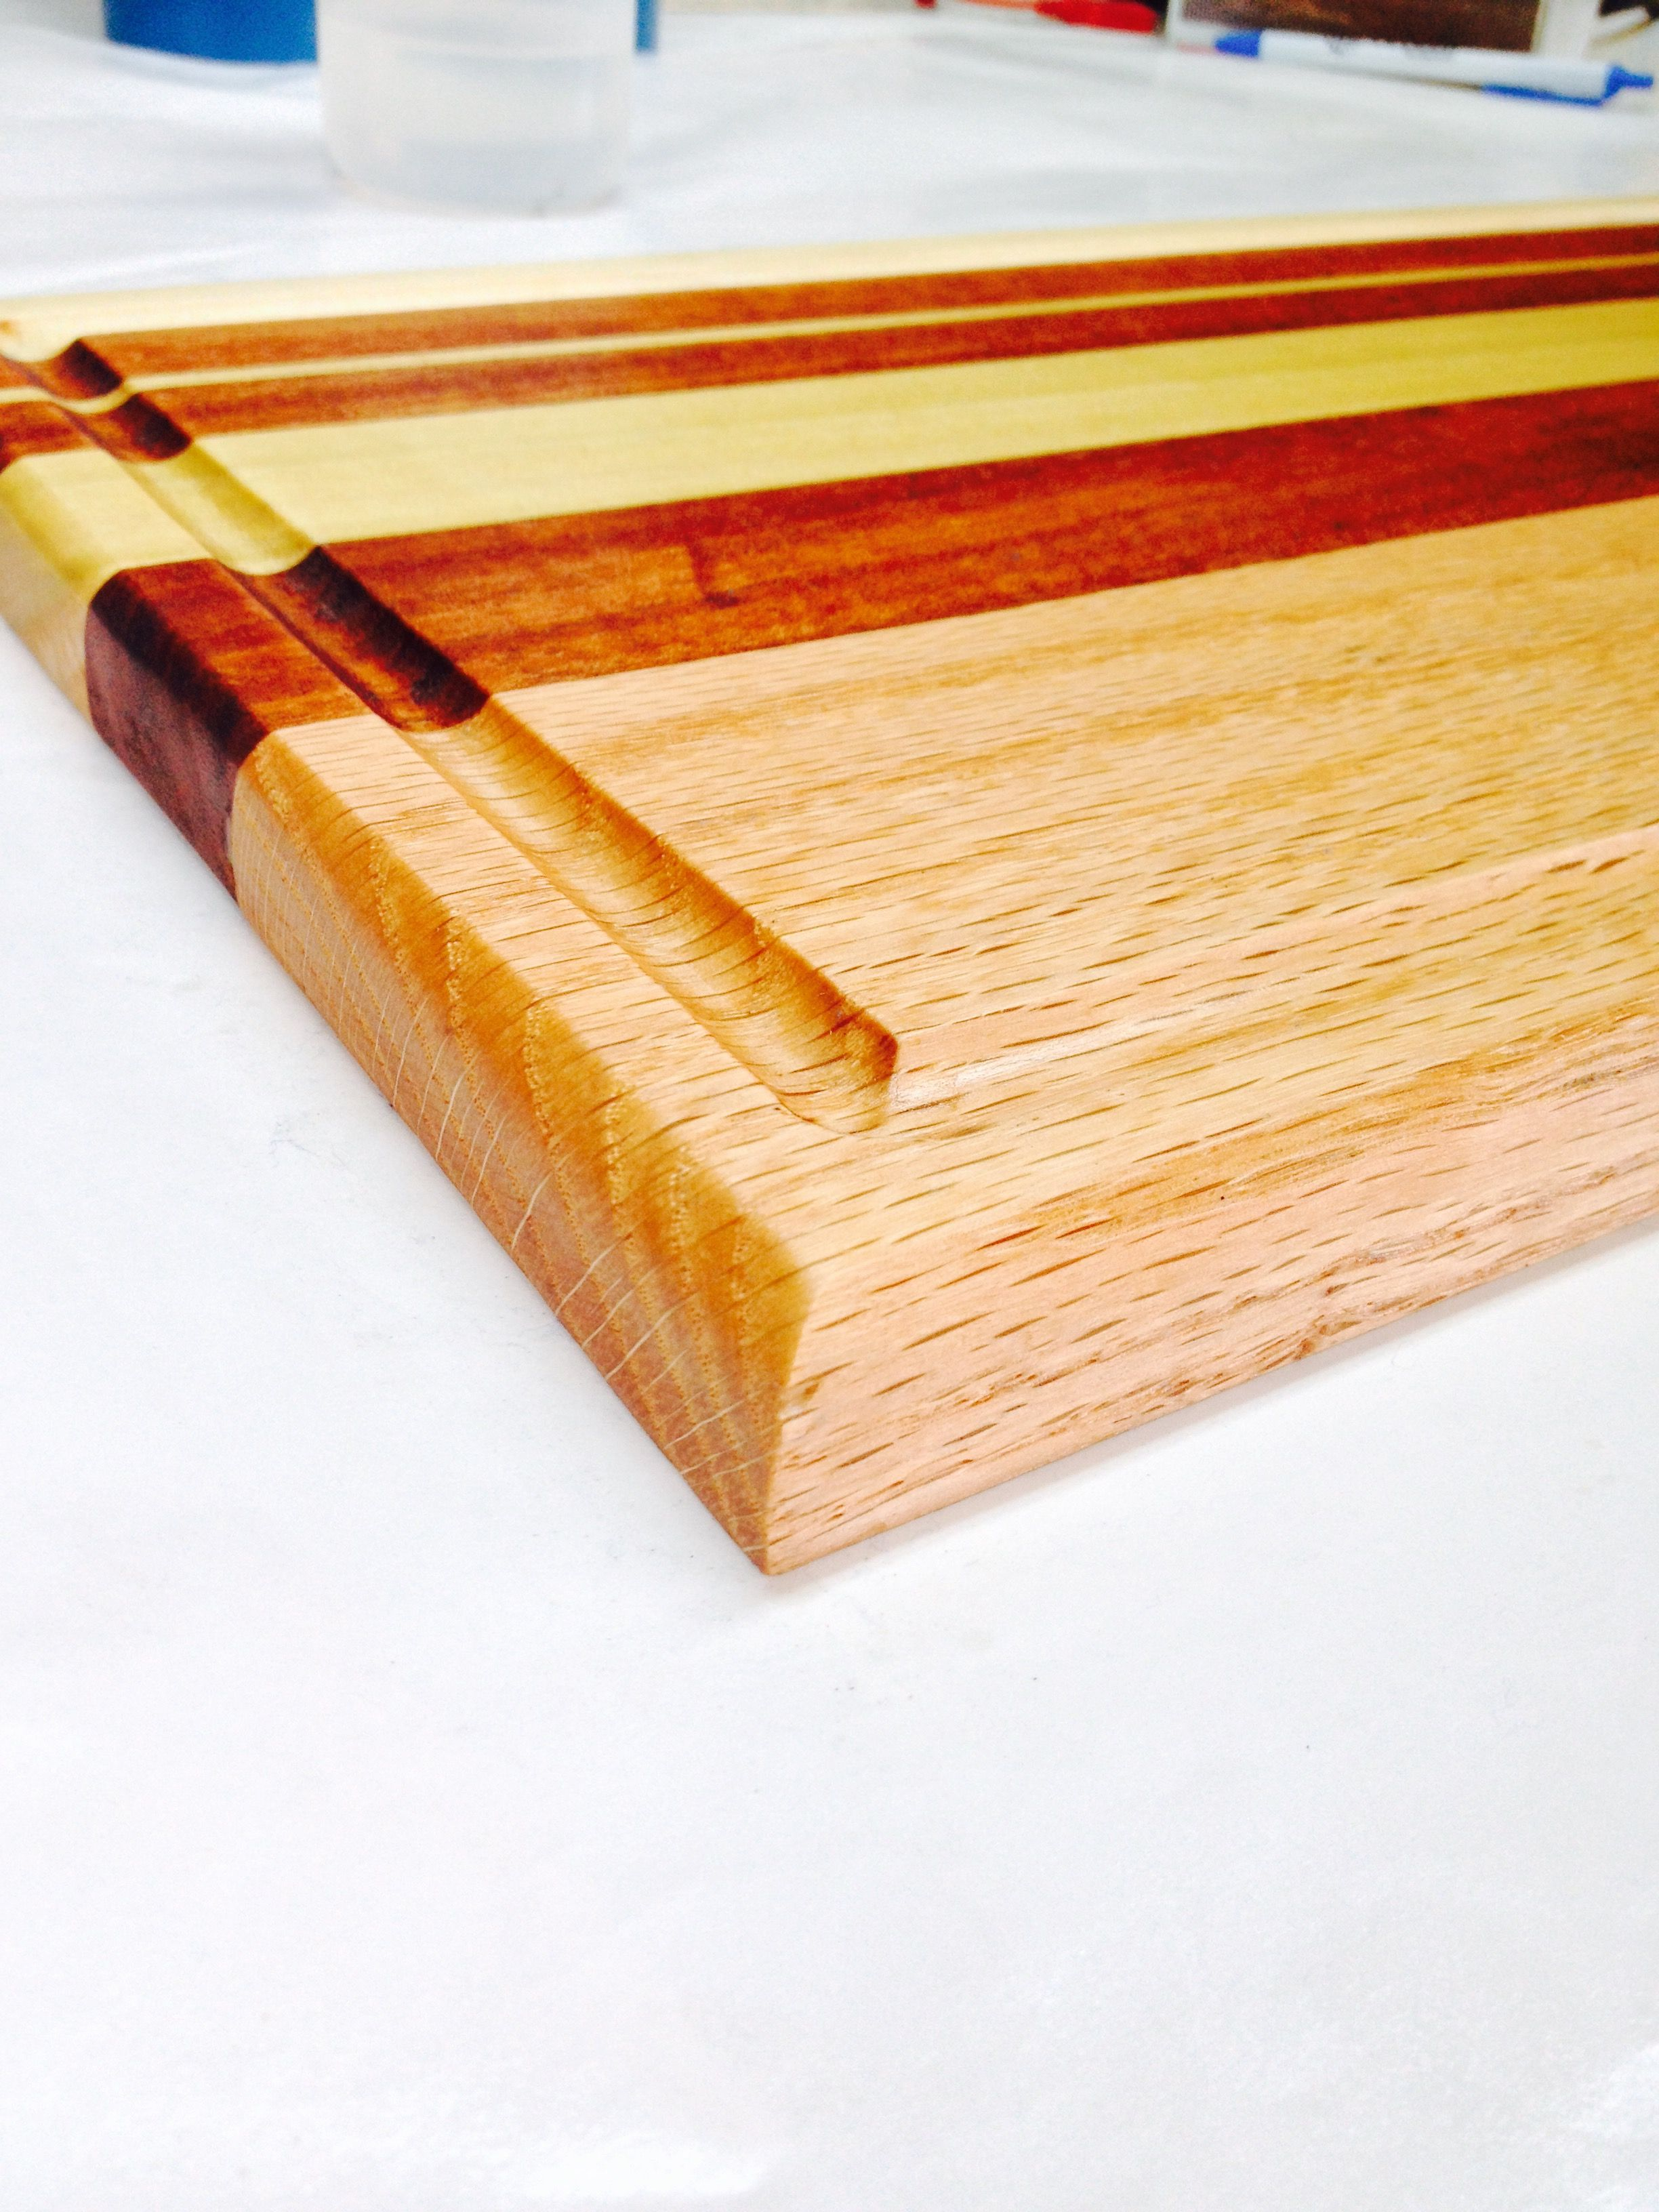 Wood Cutting Board Poplar Oak And Mahogany With A Mineral Oil Finish